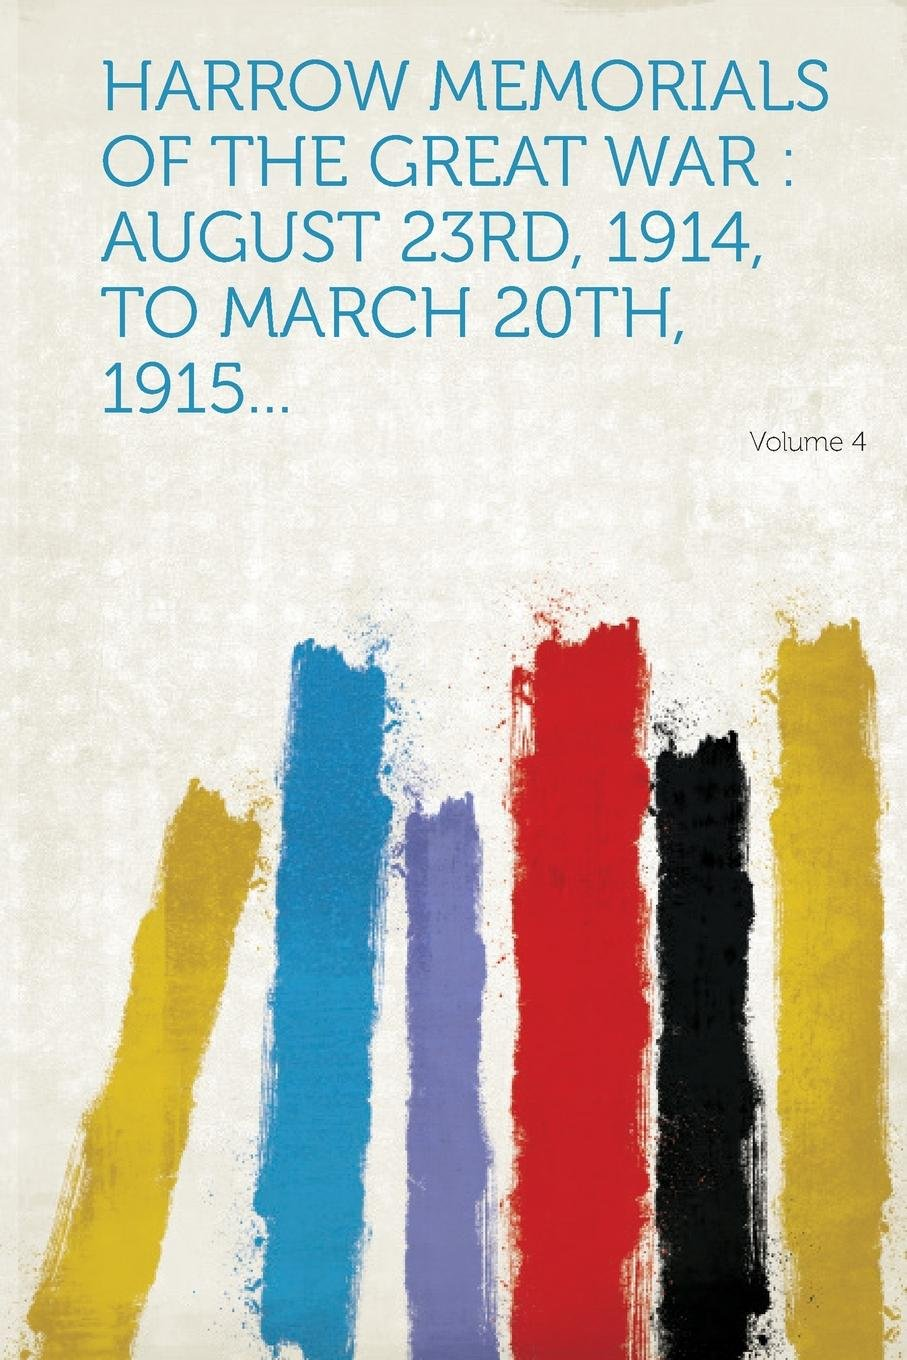 Download Harrow memorials of the great war: August 23rd, 1914, to March 20th, 1915. Volume 4 ebook